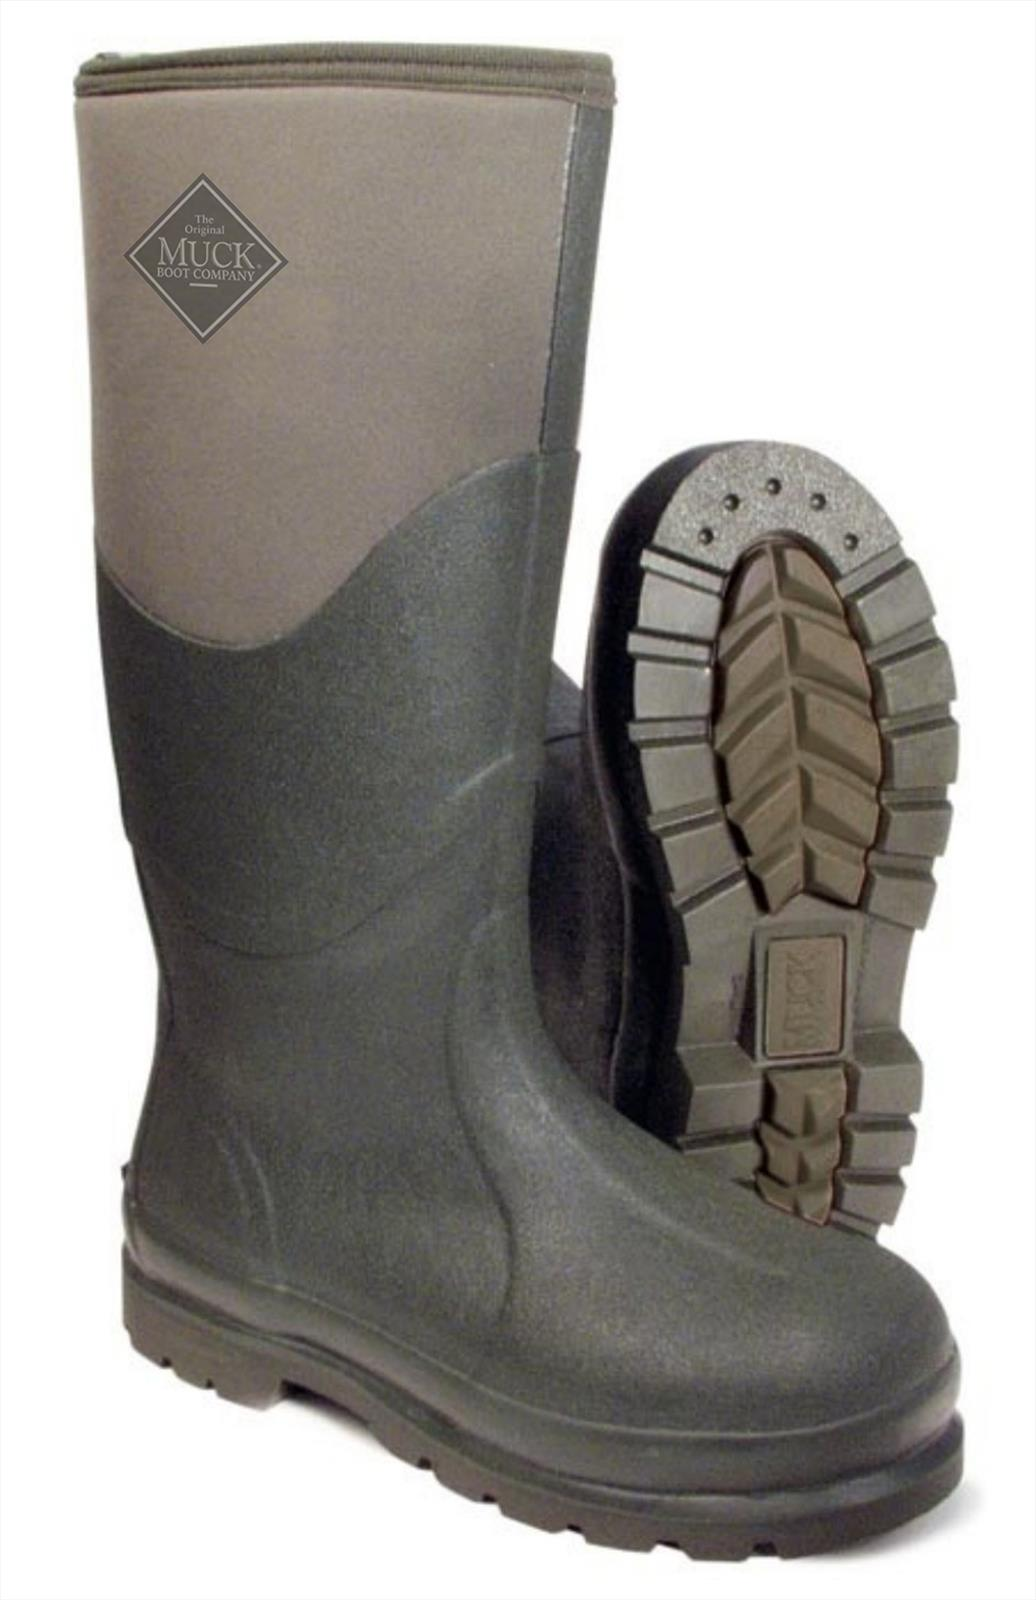 Muck Boots Esk